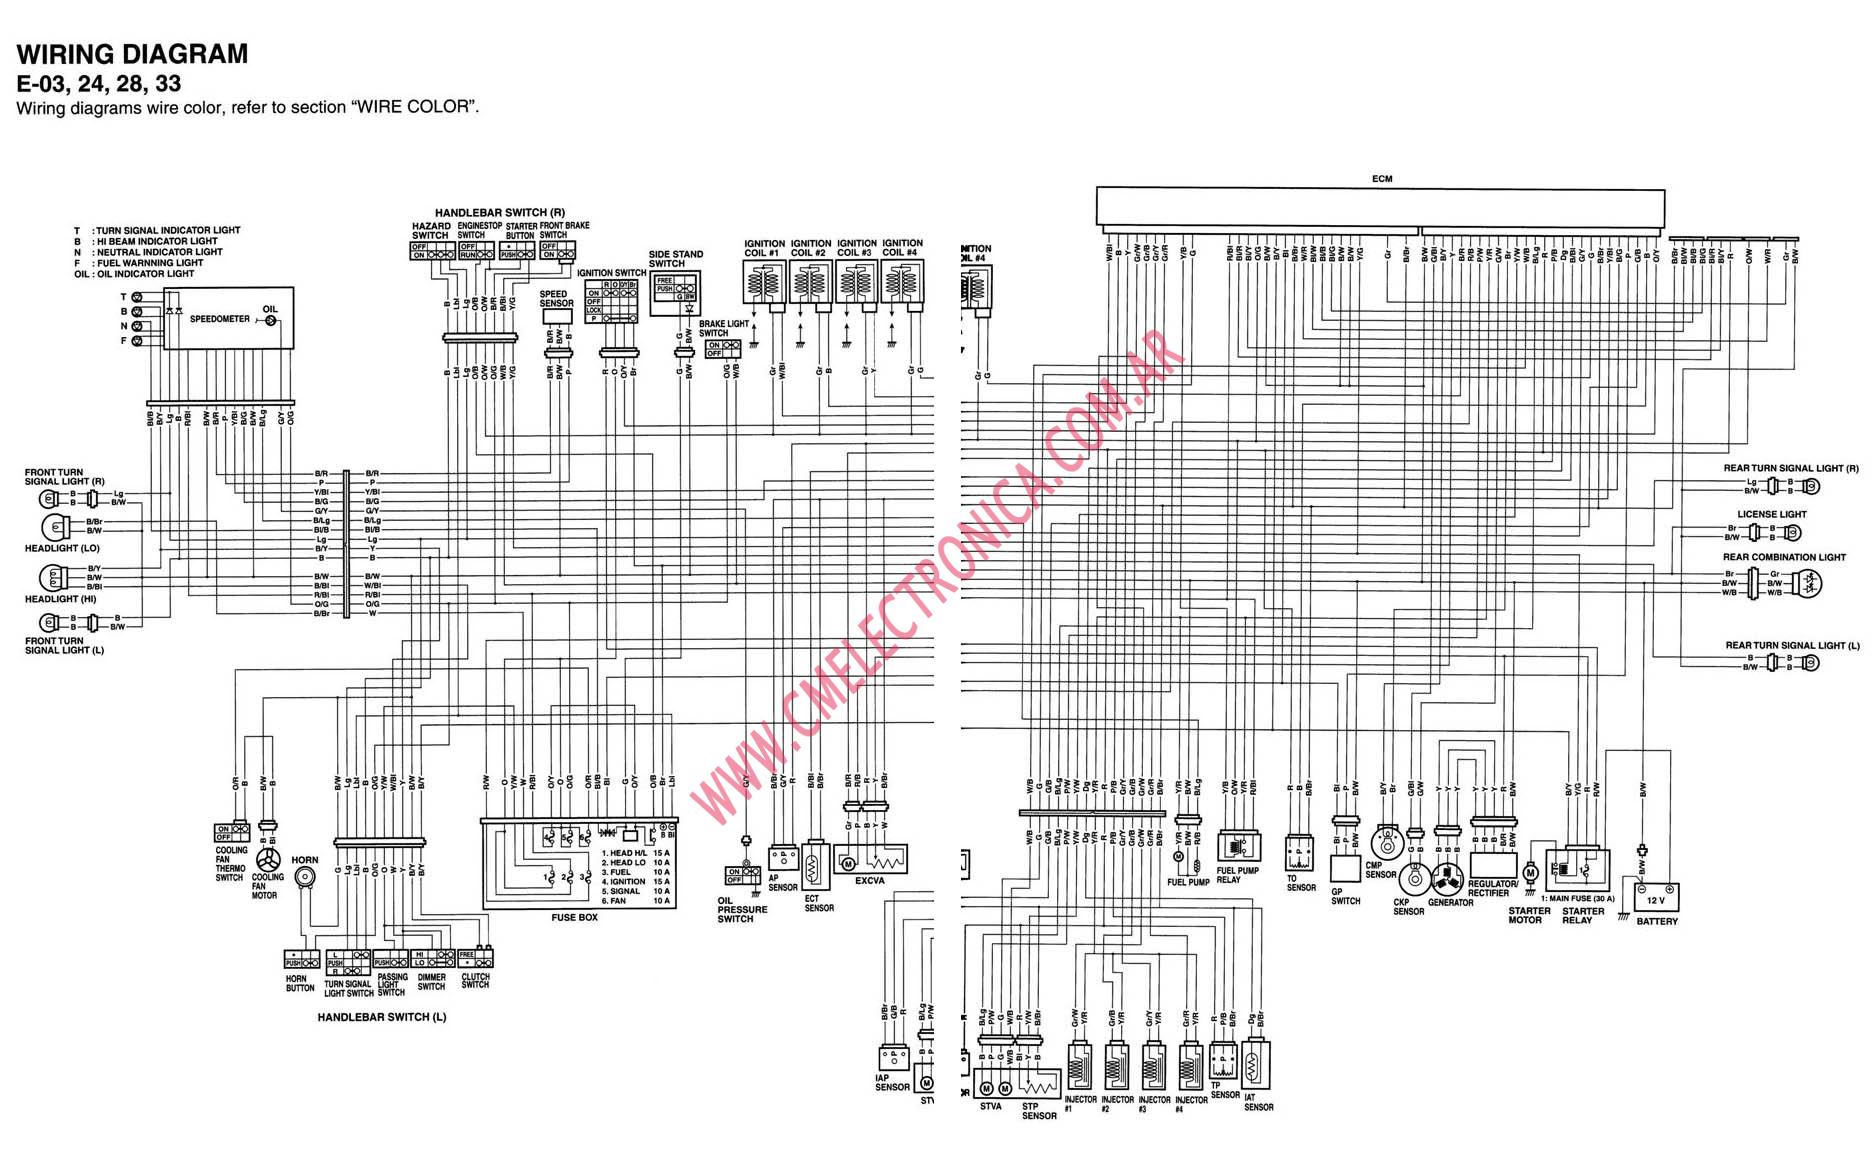 Wiring Diagram 2003 Gsx R1000 House Wiring Diagram Symbols \u2022 06 Suzuki Gsxr  600 Wiring Diagram 2004 Gsxr 1000 Wiring Diagram